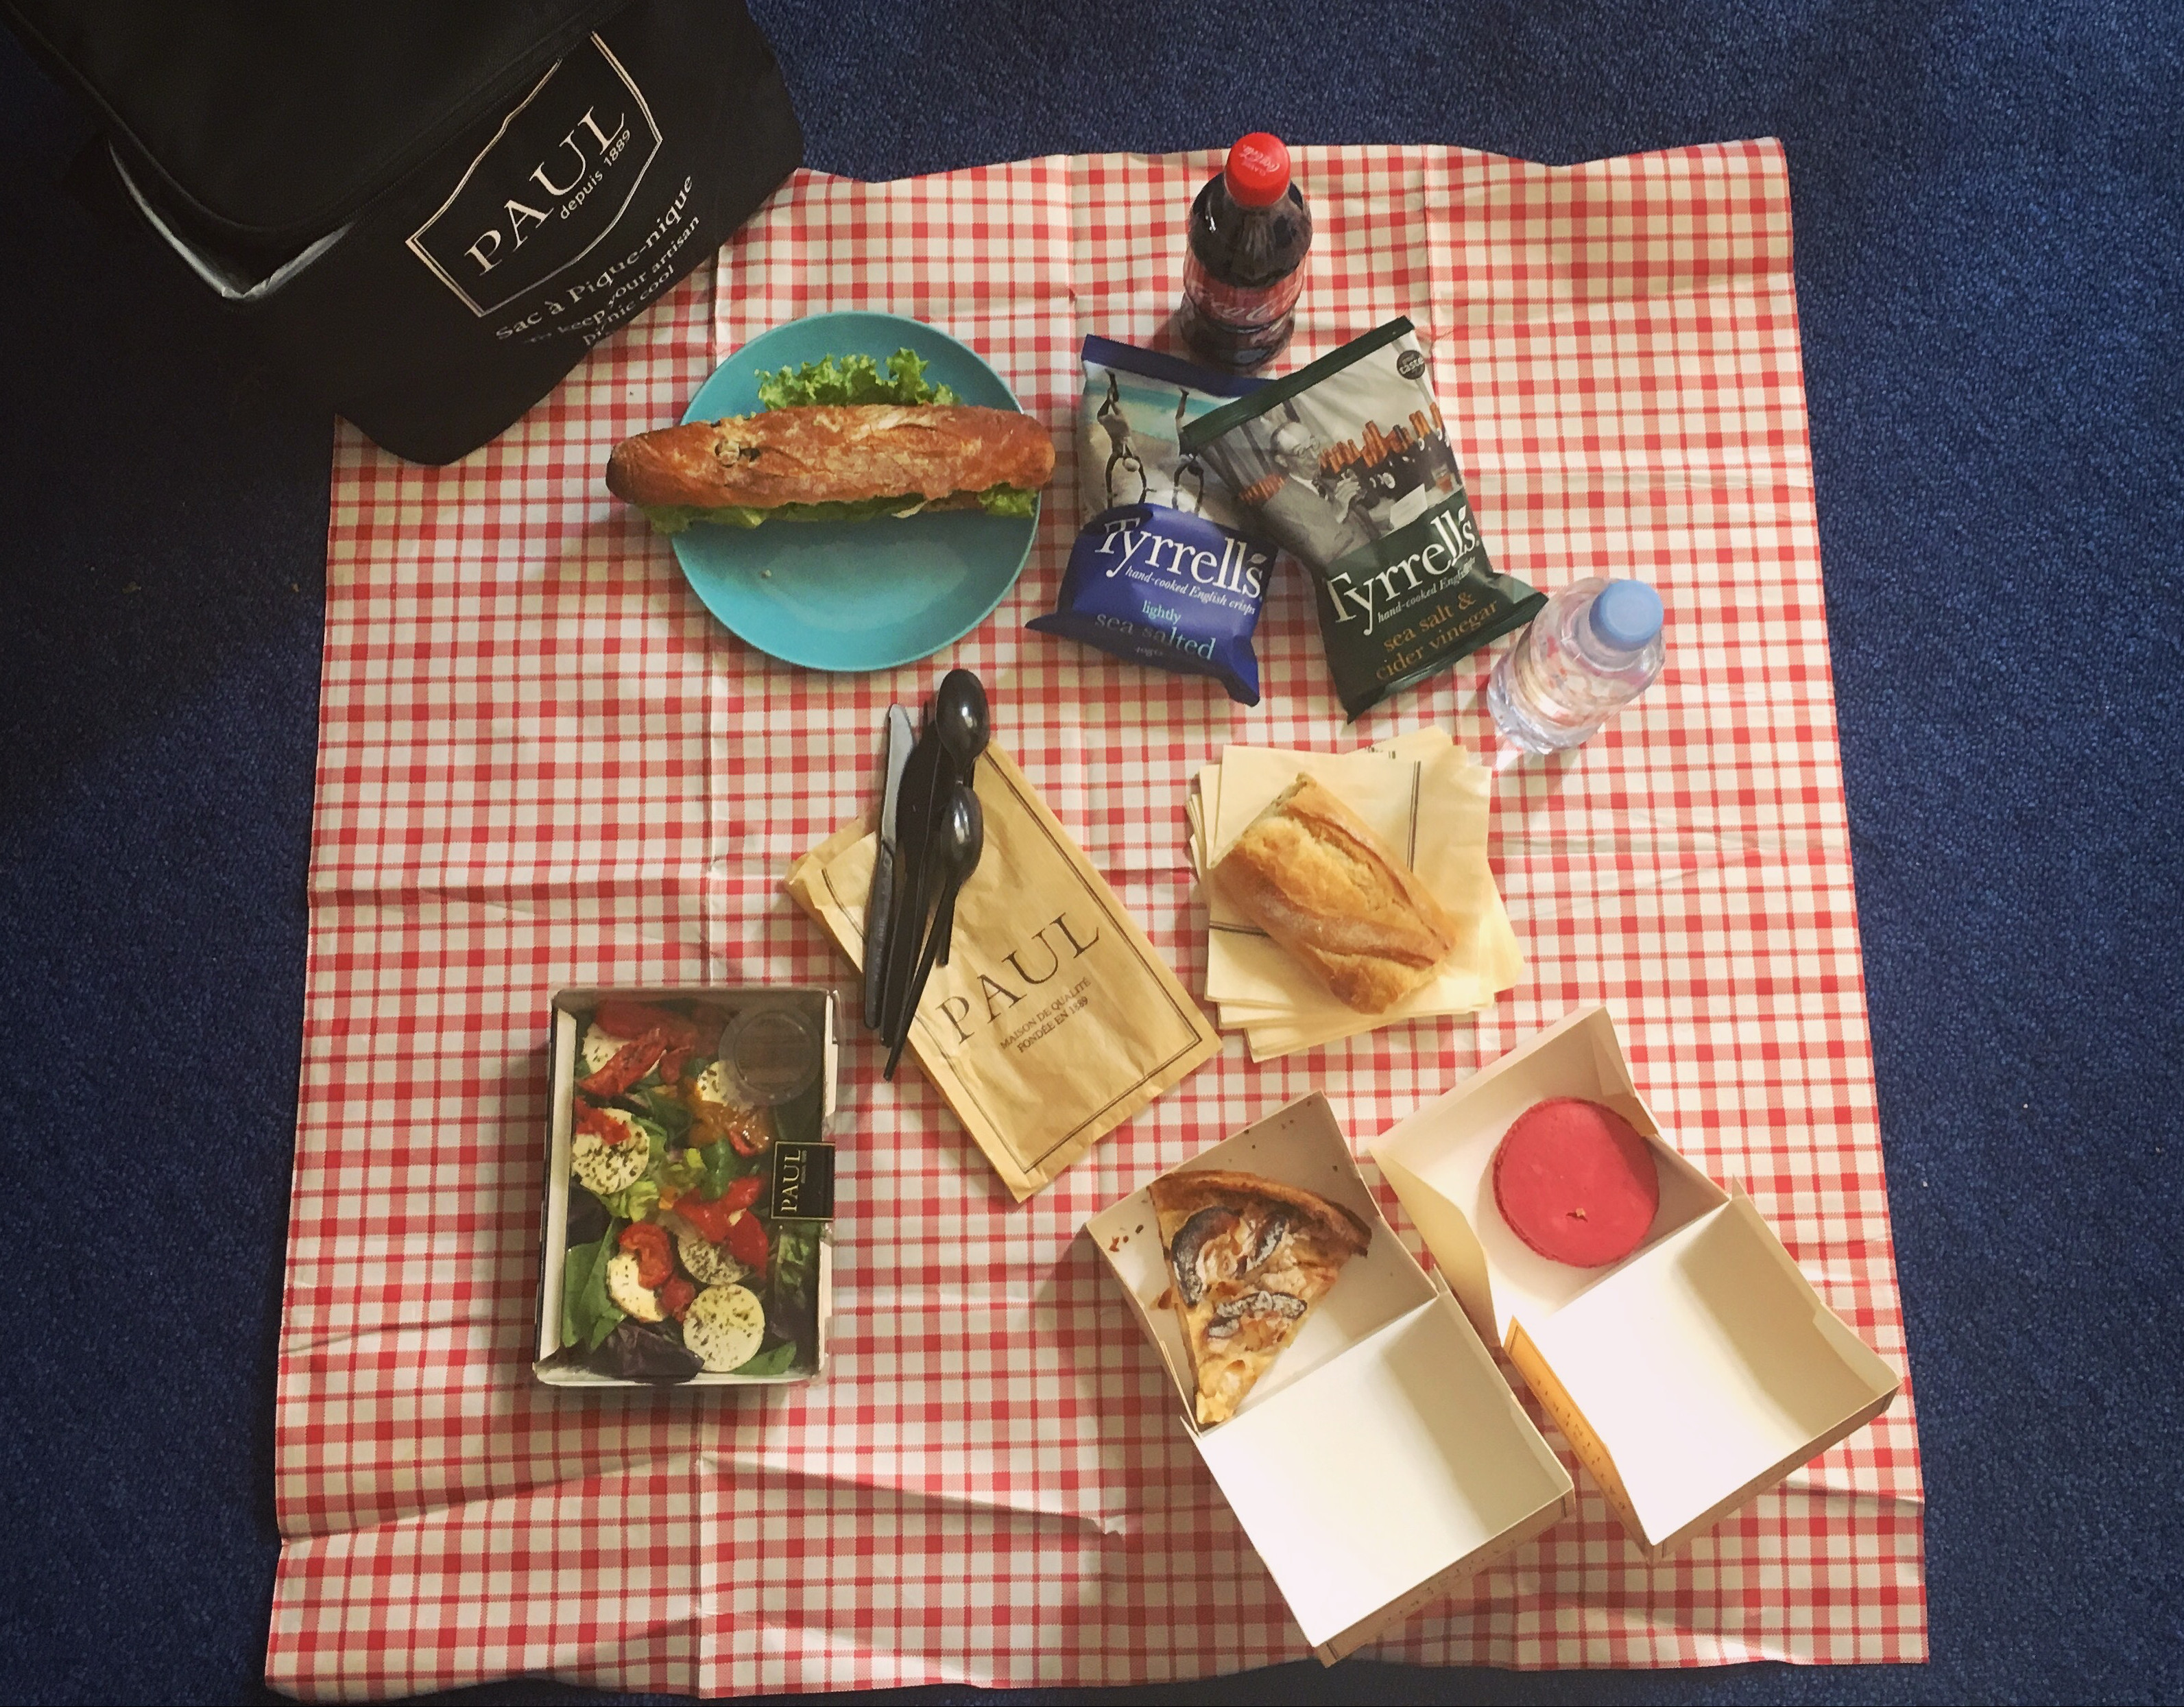 Getting ready for summer: A Picnic from PAUL